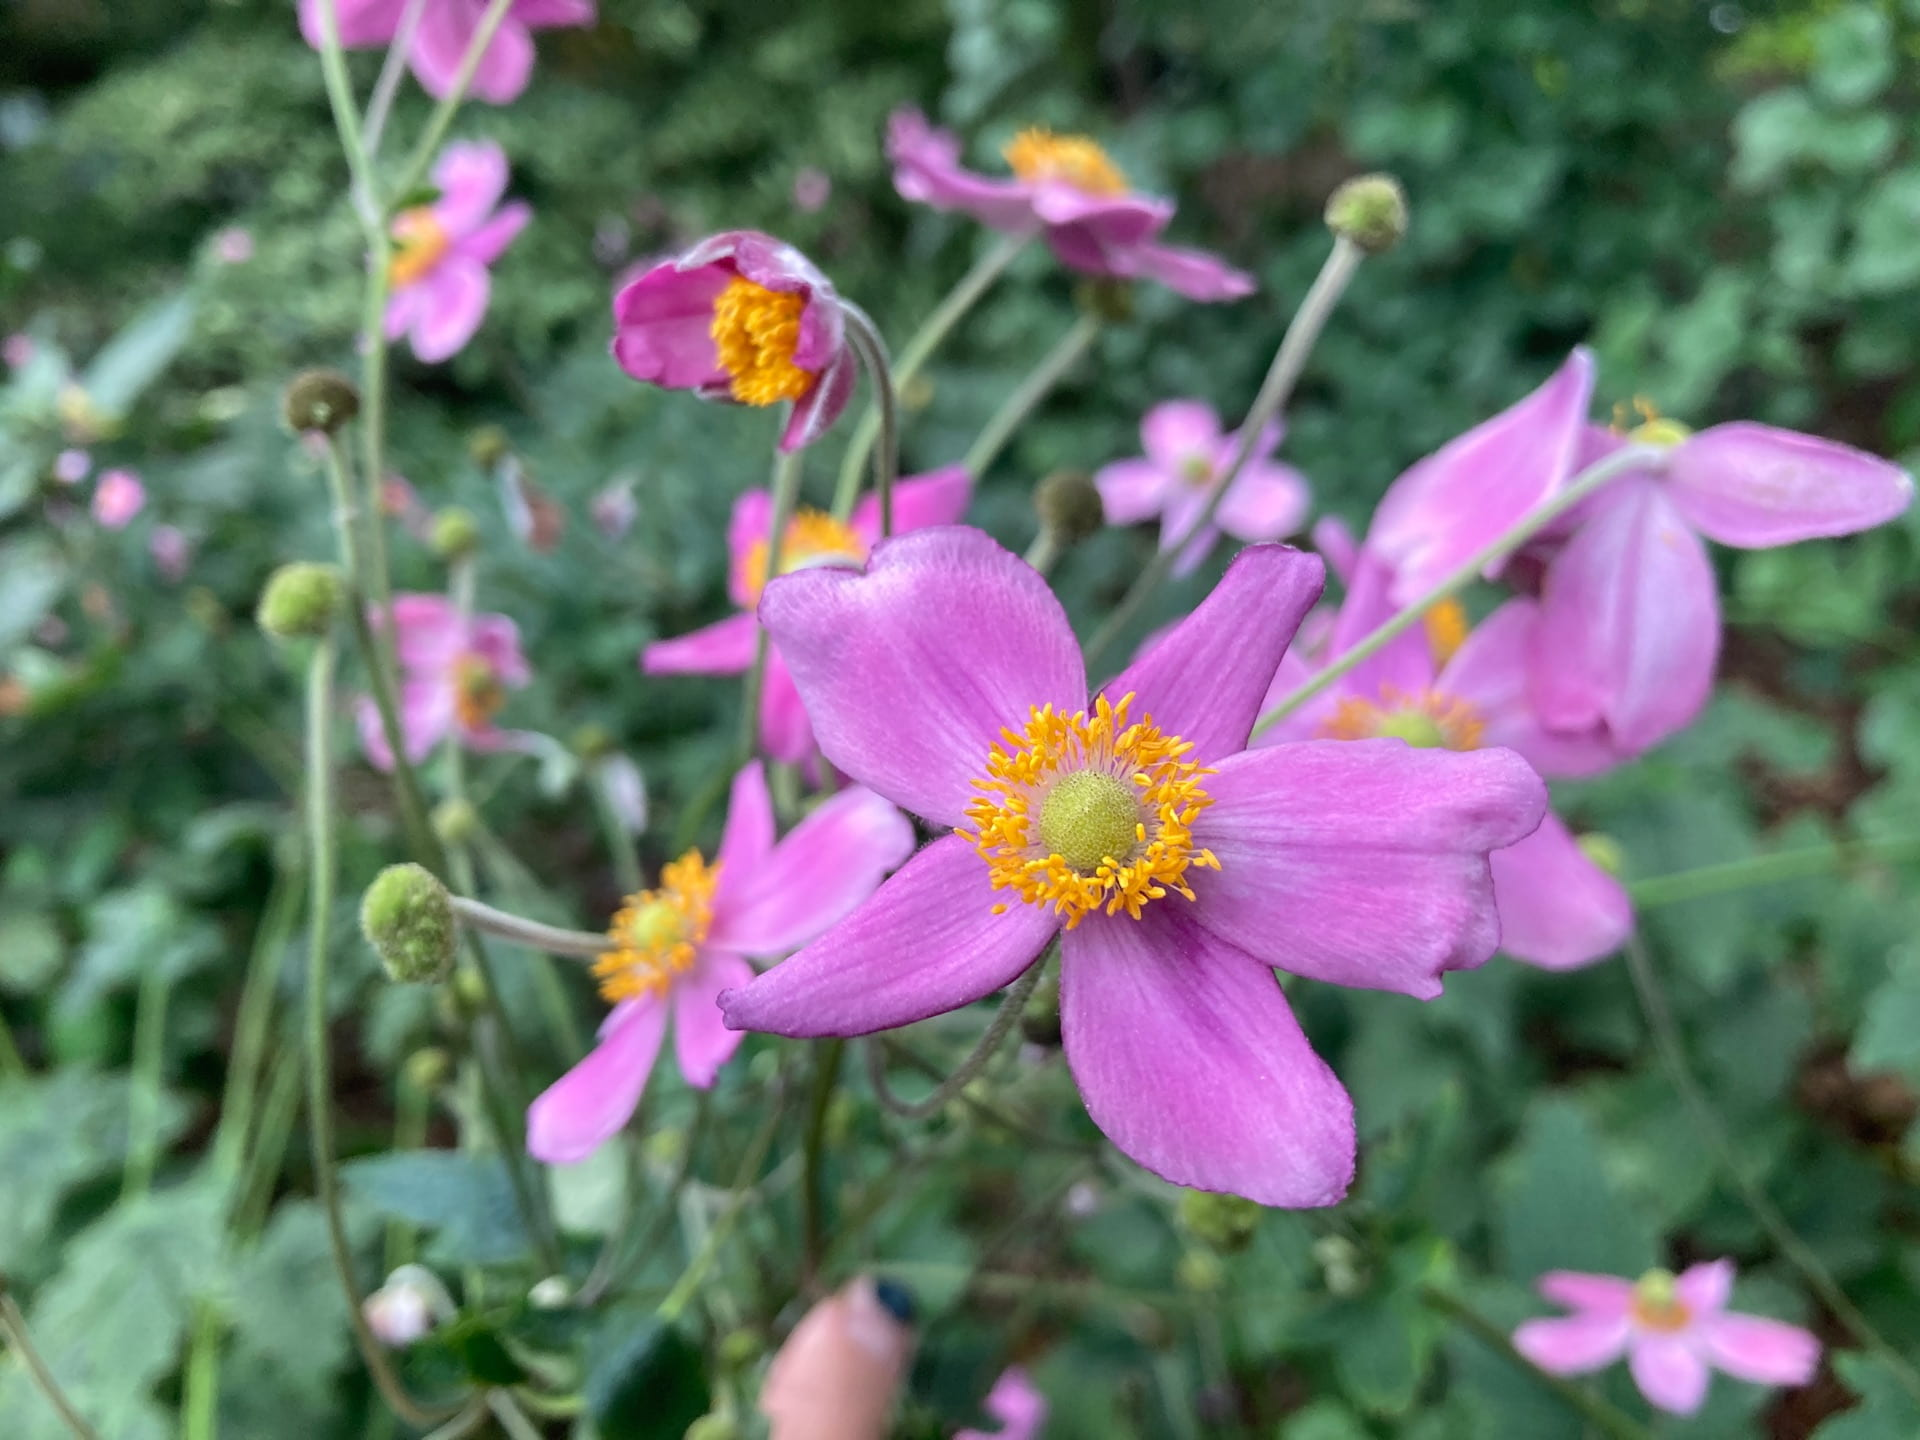 Eriocapitella hupehensis, the Japanese anemone, bloom in a spectrum of pinks and whites.